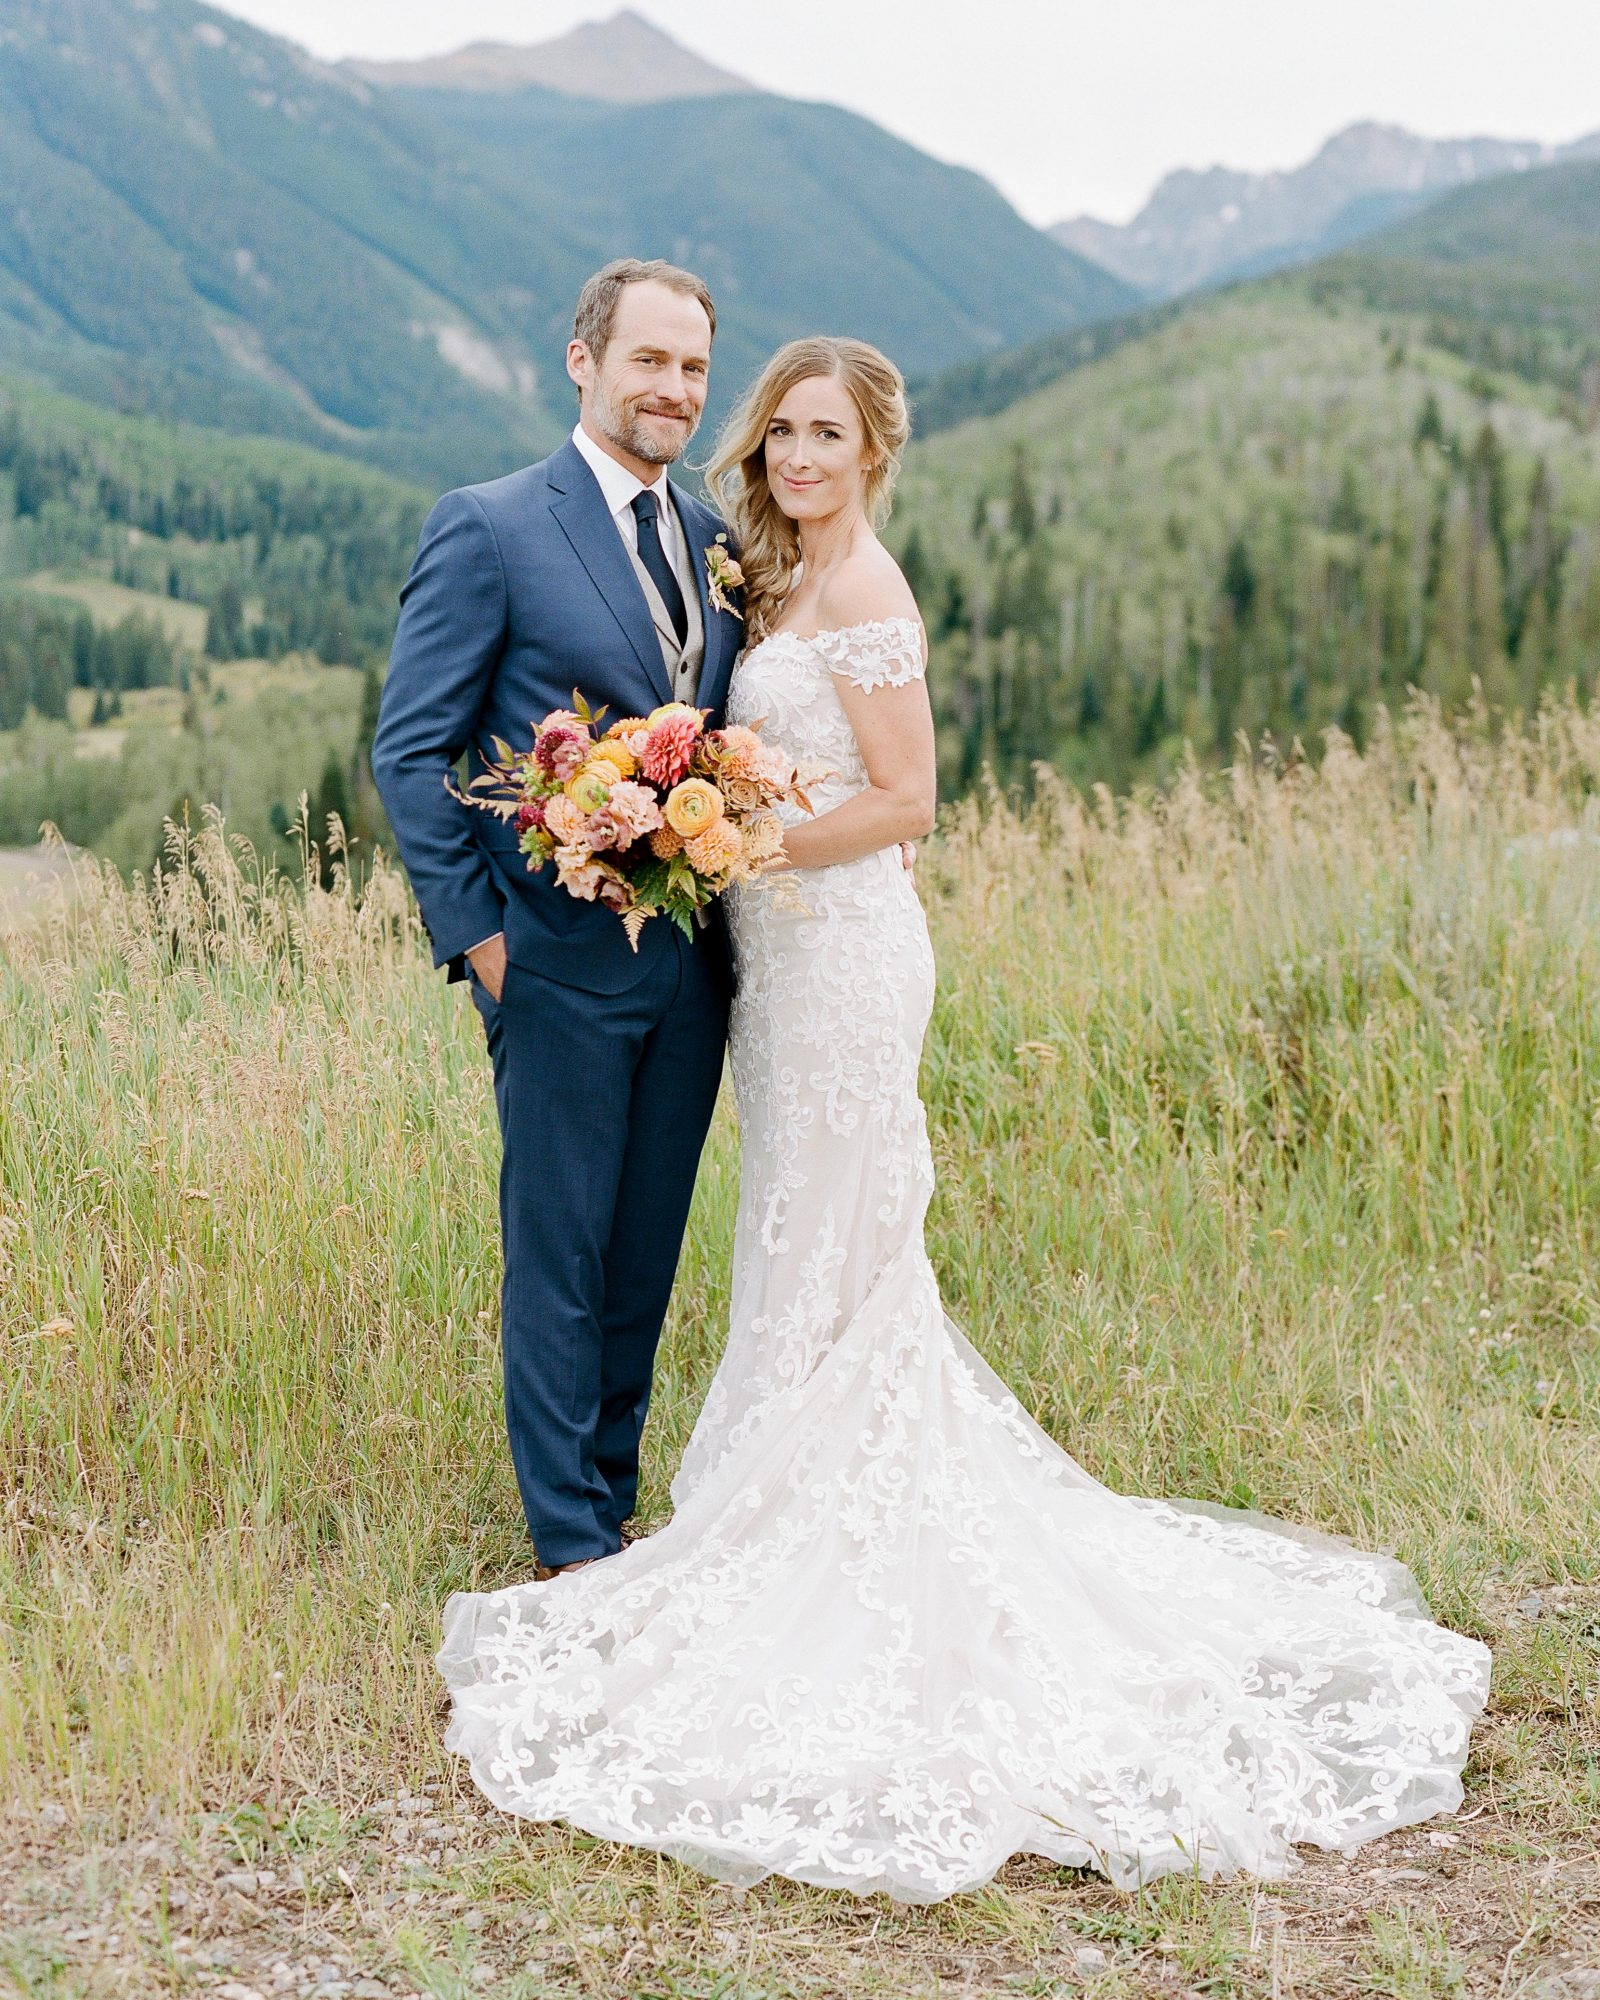 jill phil wedding couple pose surrounded by greenery and a mountain view